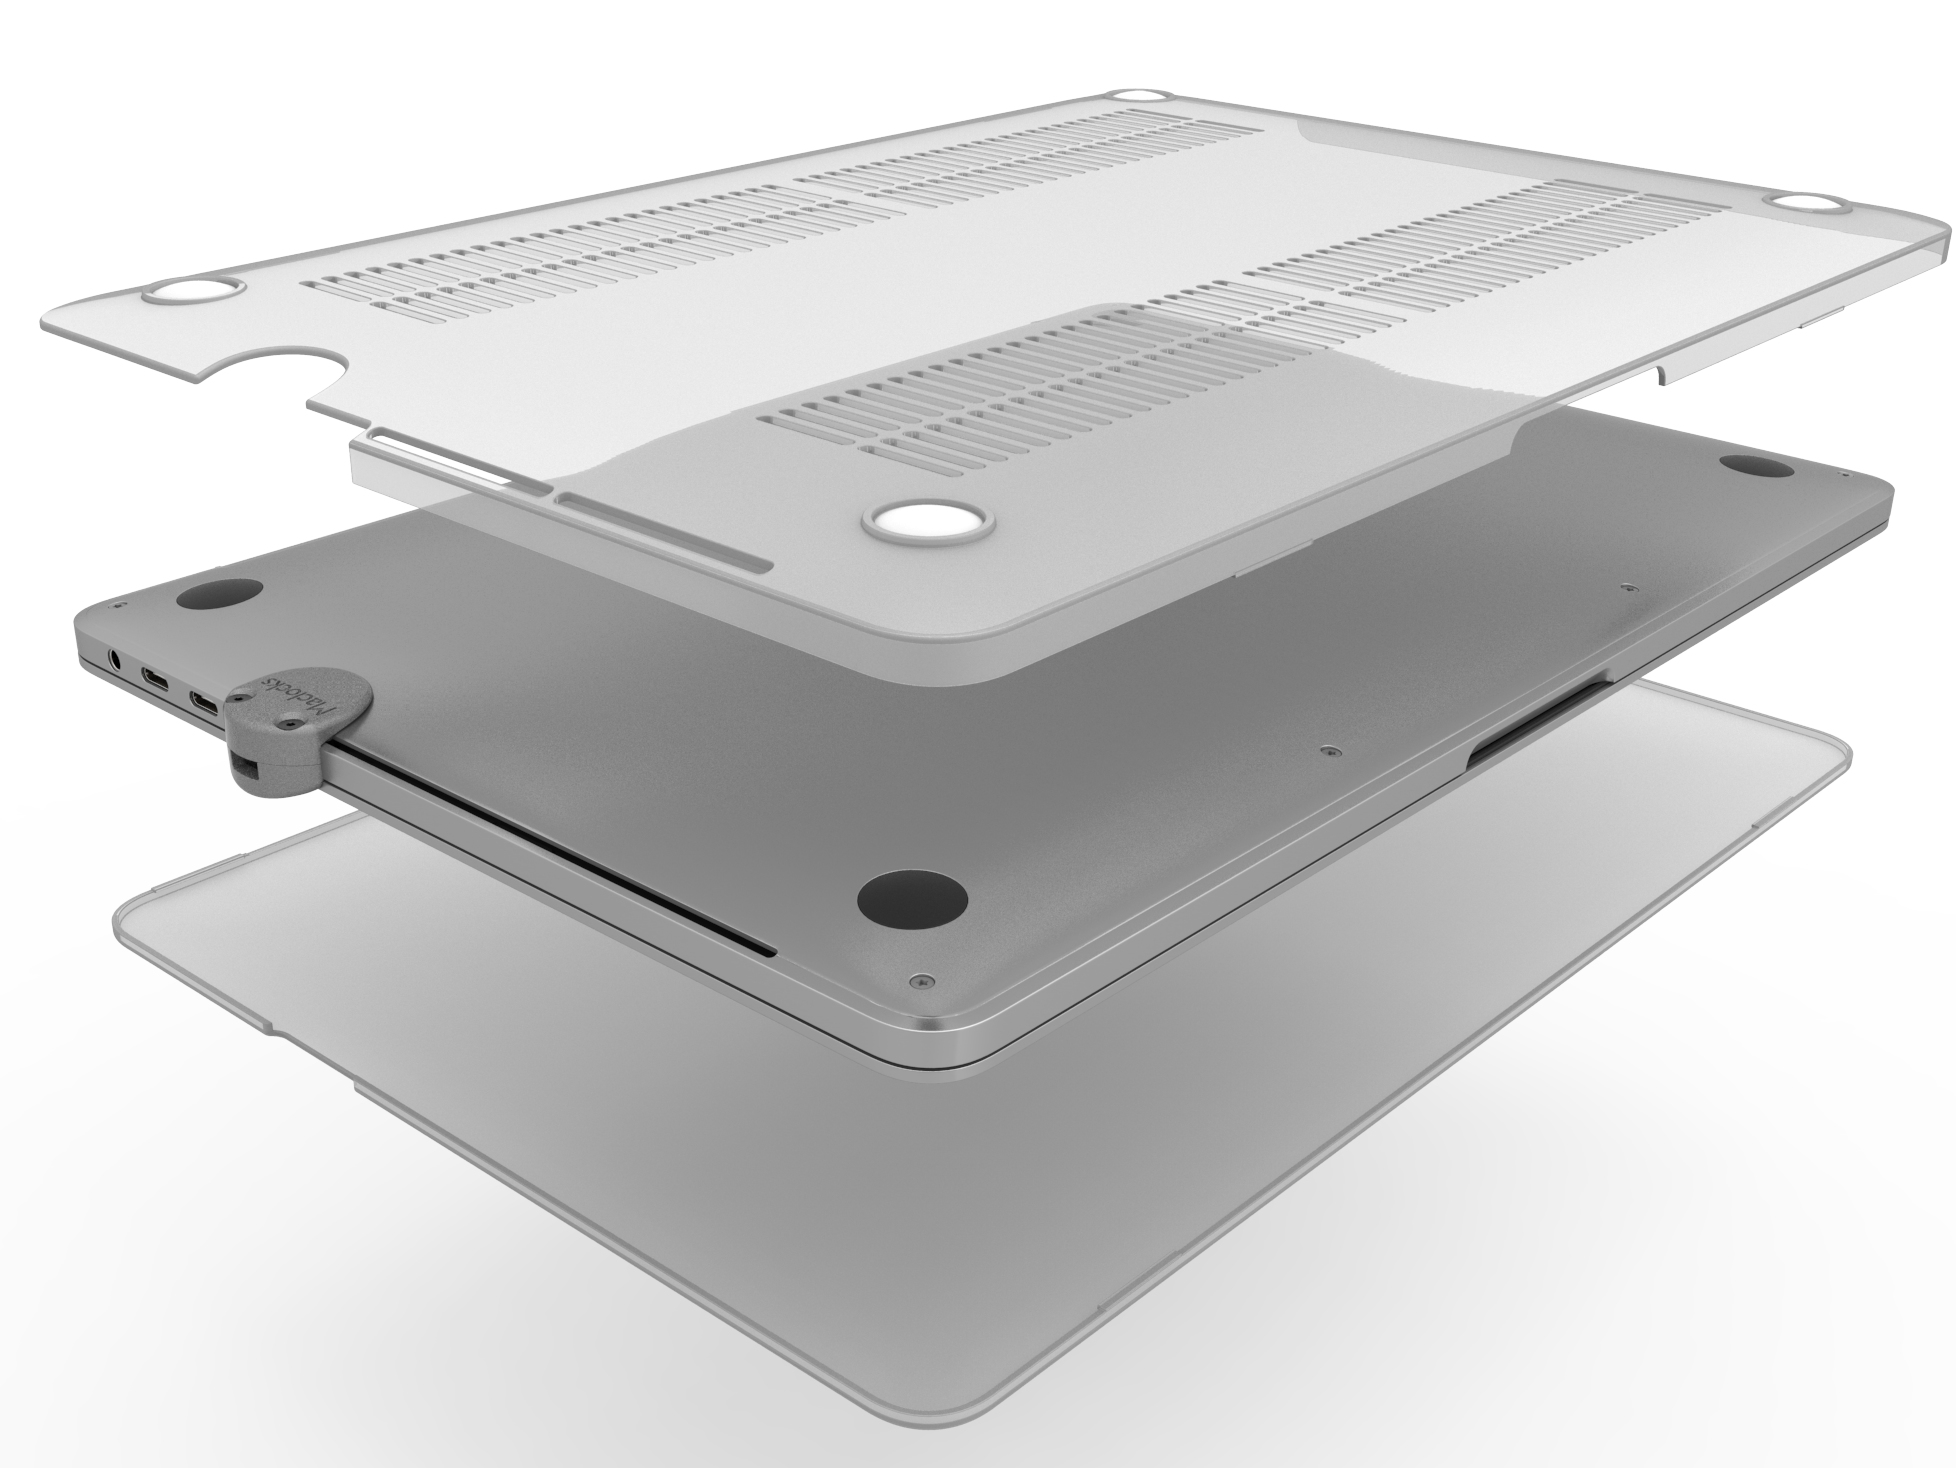 """Compulocks The Ledge - MacBook Pro 13.3"""" Touch Bar Cable Lock Adapter and HardShell Case - Keyed Cab"""